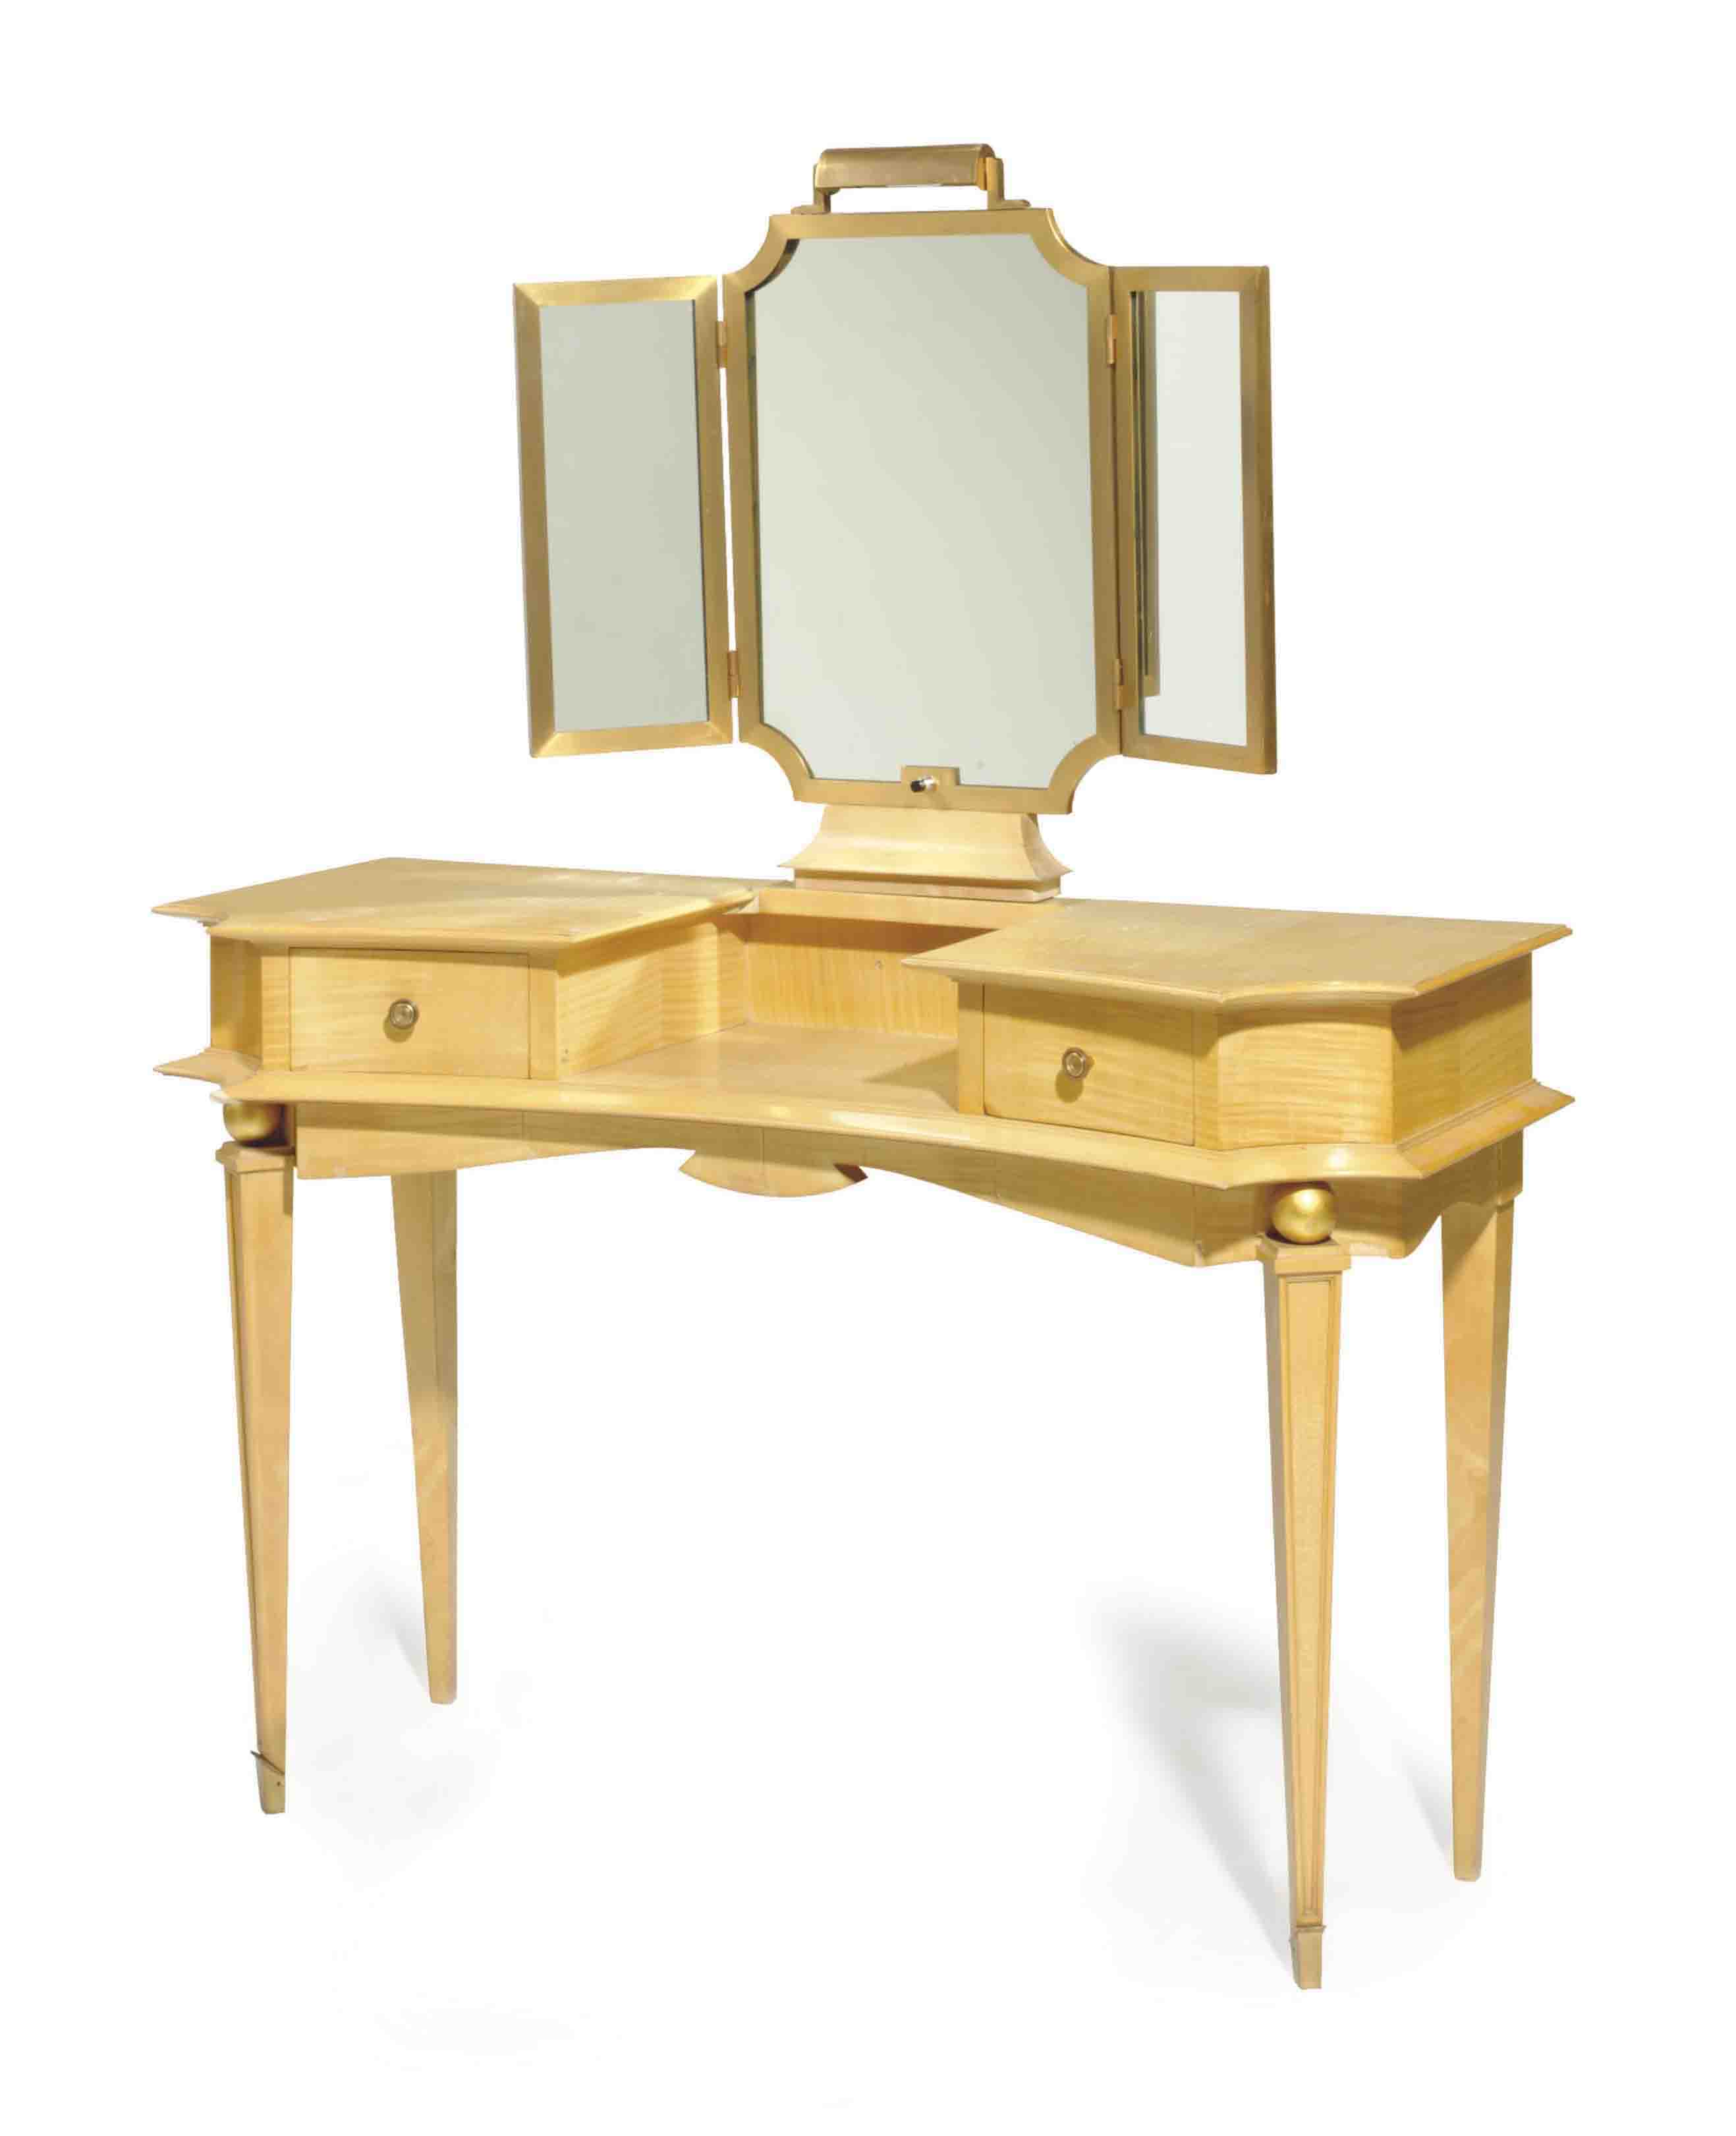 AN ART DECO STYLE MAPLE VANITY TABLE,